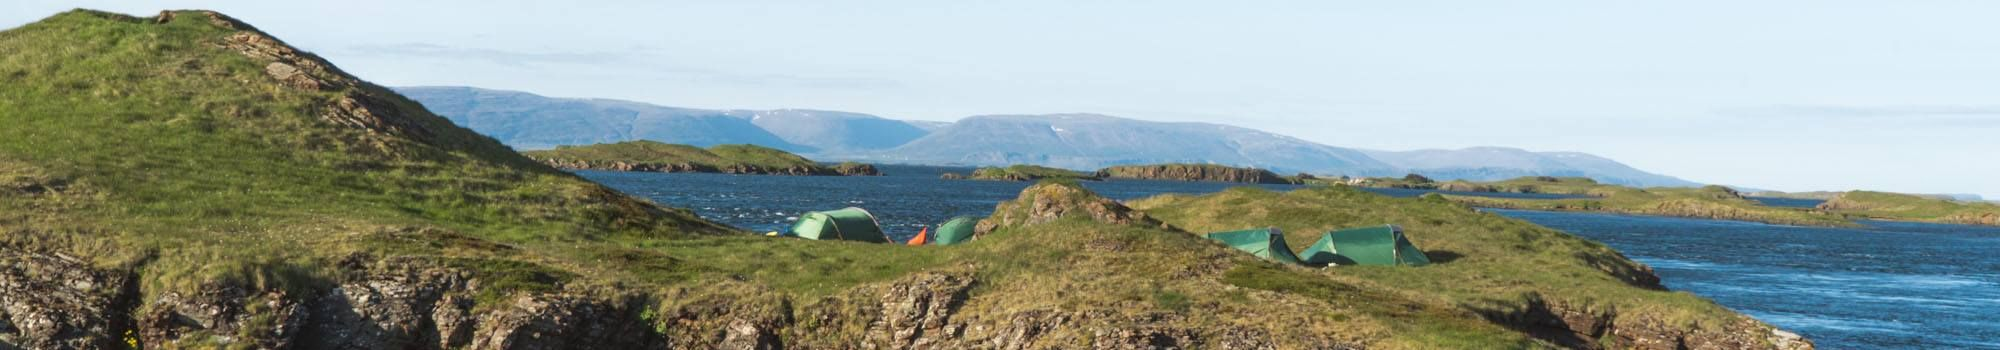 three tents on remote island, west iceland